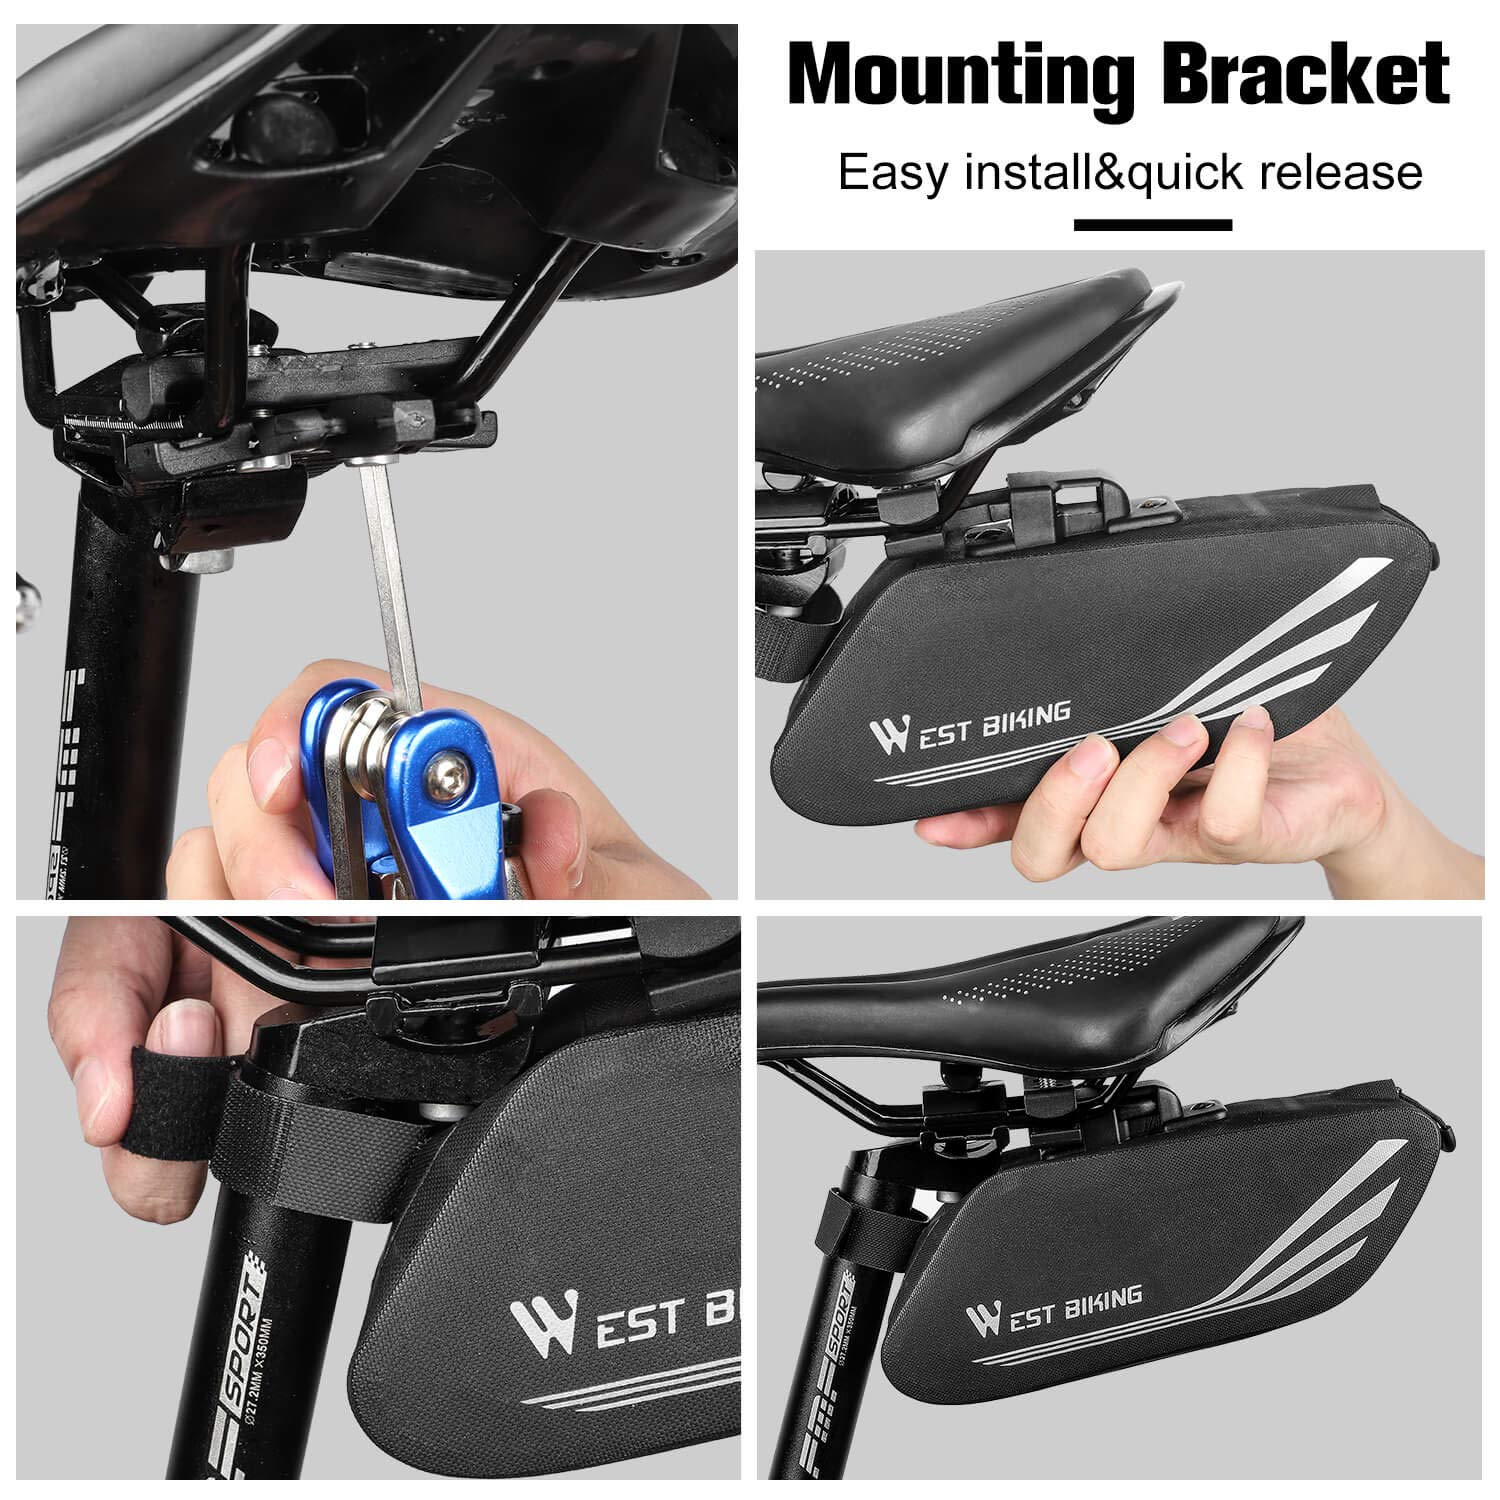 Large Capacity Mountain Road Bike Tail Bag for Mini Pumps Repair Tools Bicycle Accessories WESTGIRL Bike Saddle Bag Water Resistant Bicycle Under Seat Storage Pack with Reflective Stripes